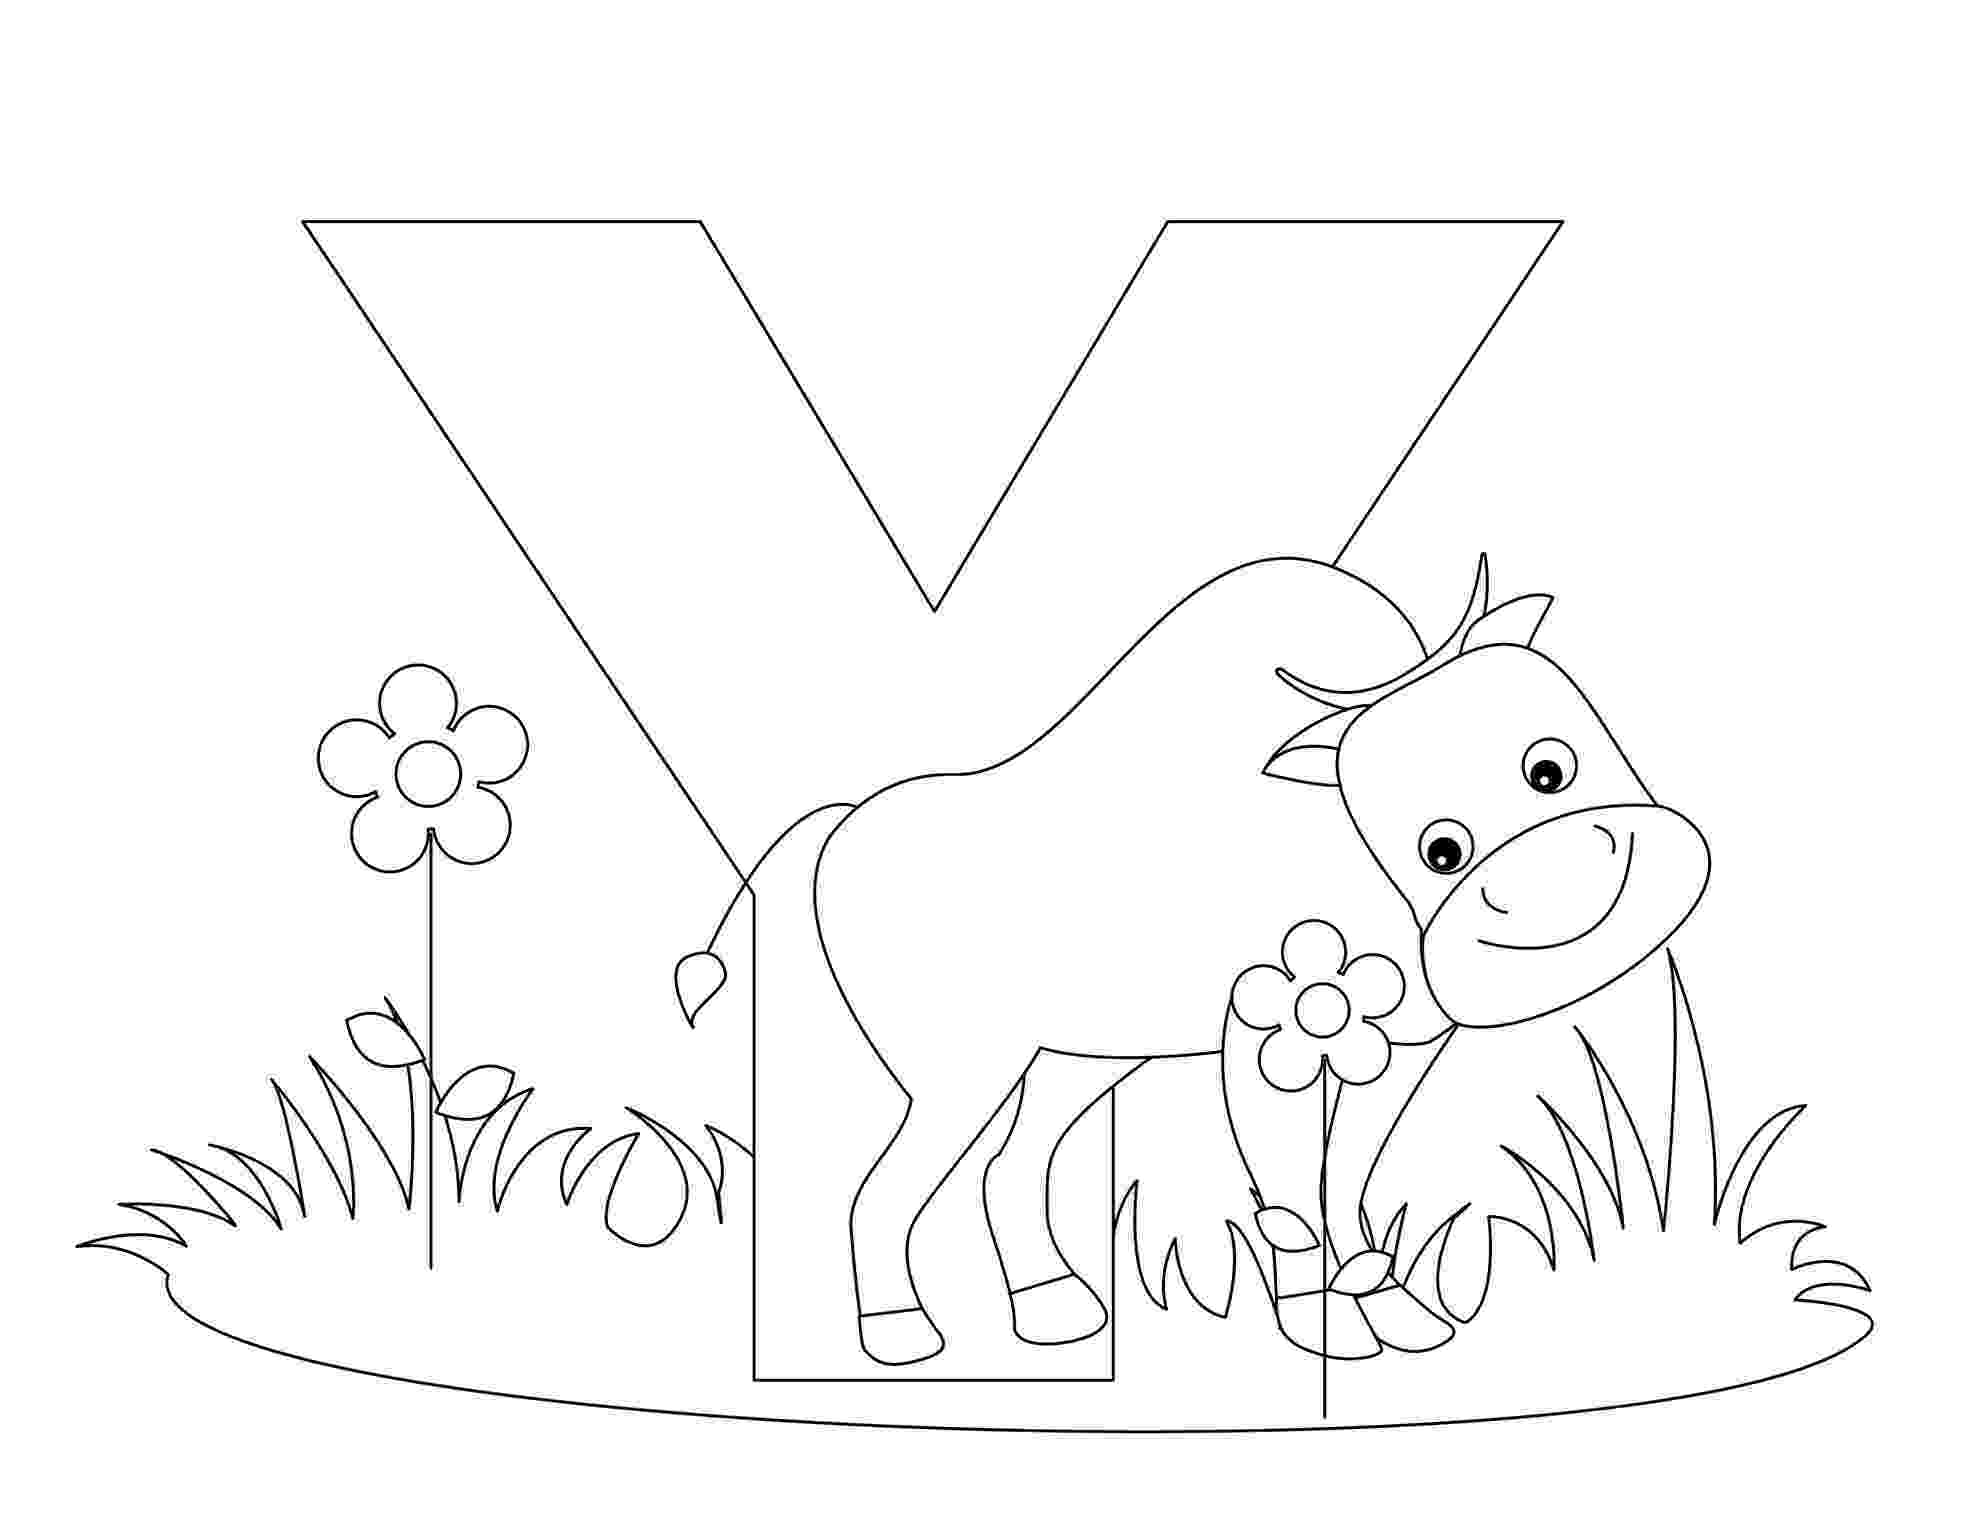 childrens colouring pages alphabet free printable alphabet coloring pages for kids best childrens alphabet colouring pages 1 1